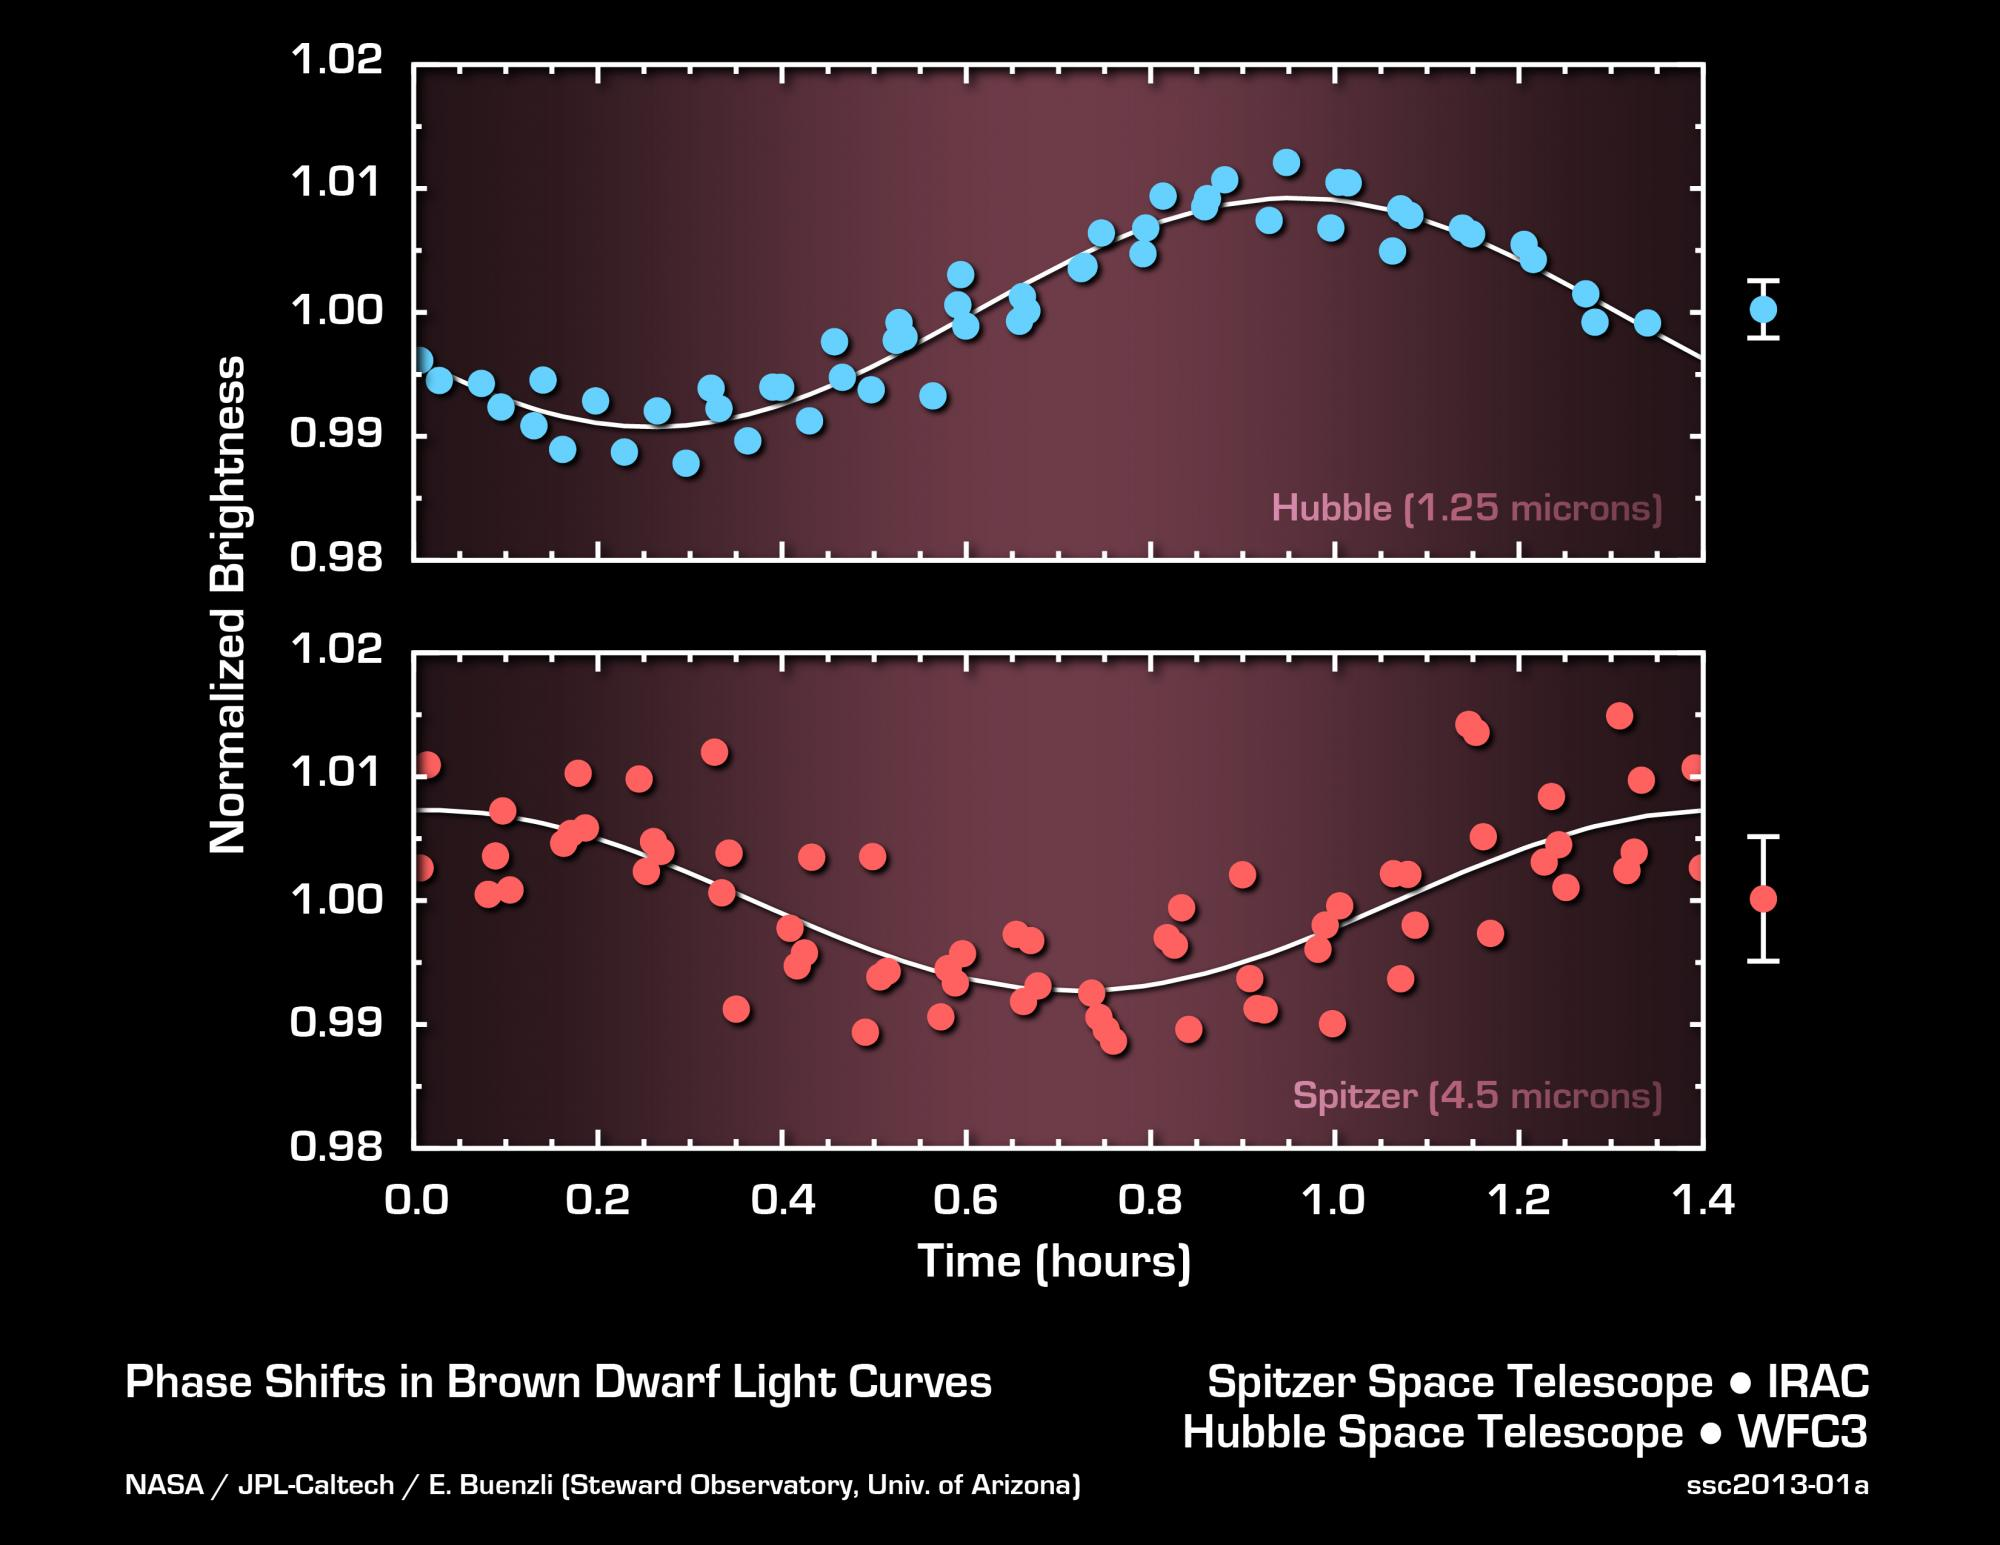 This graph shows the brightness variations of the brown dwarf named 2MASSJ22282889-431026 measured simultaneously by both NASA's Hubble and Spitzer space telescopes. As the object rotates every 1.4 hours, its emitted light periodically brightens and dims.